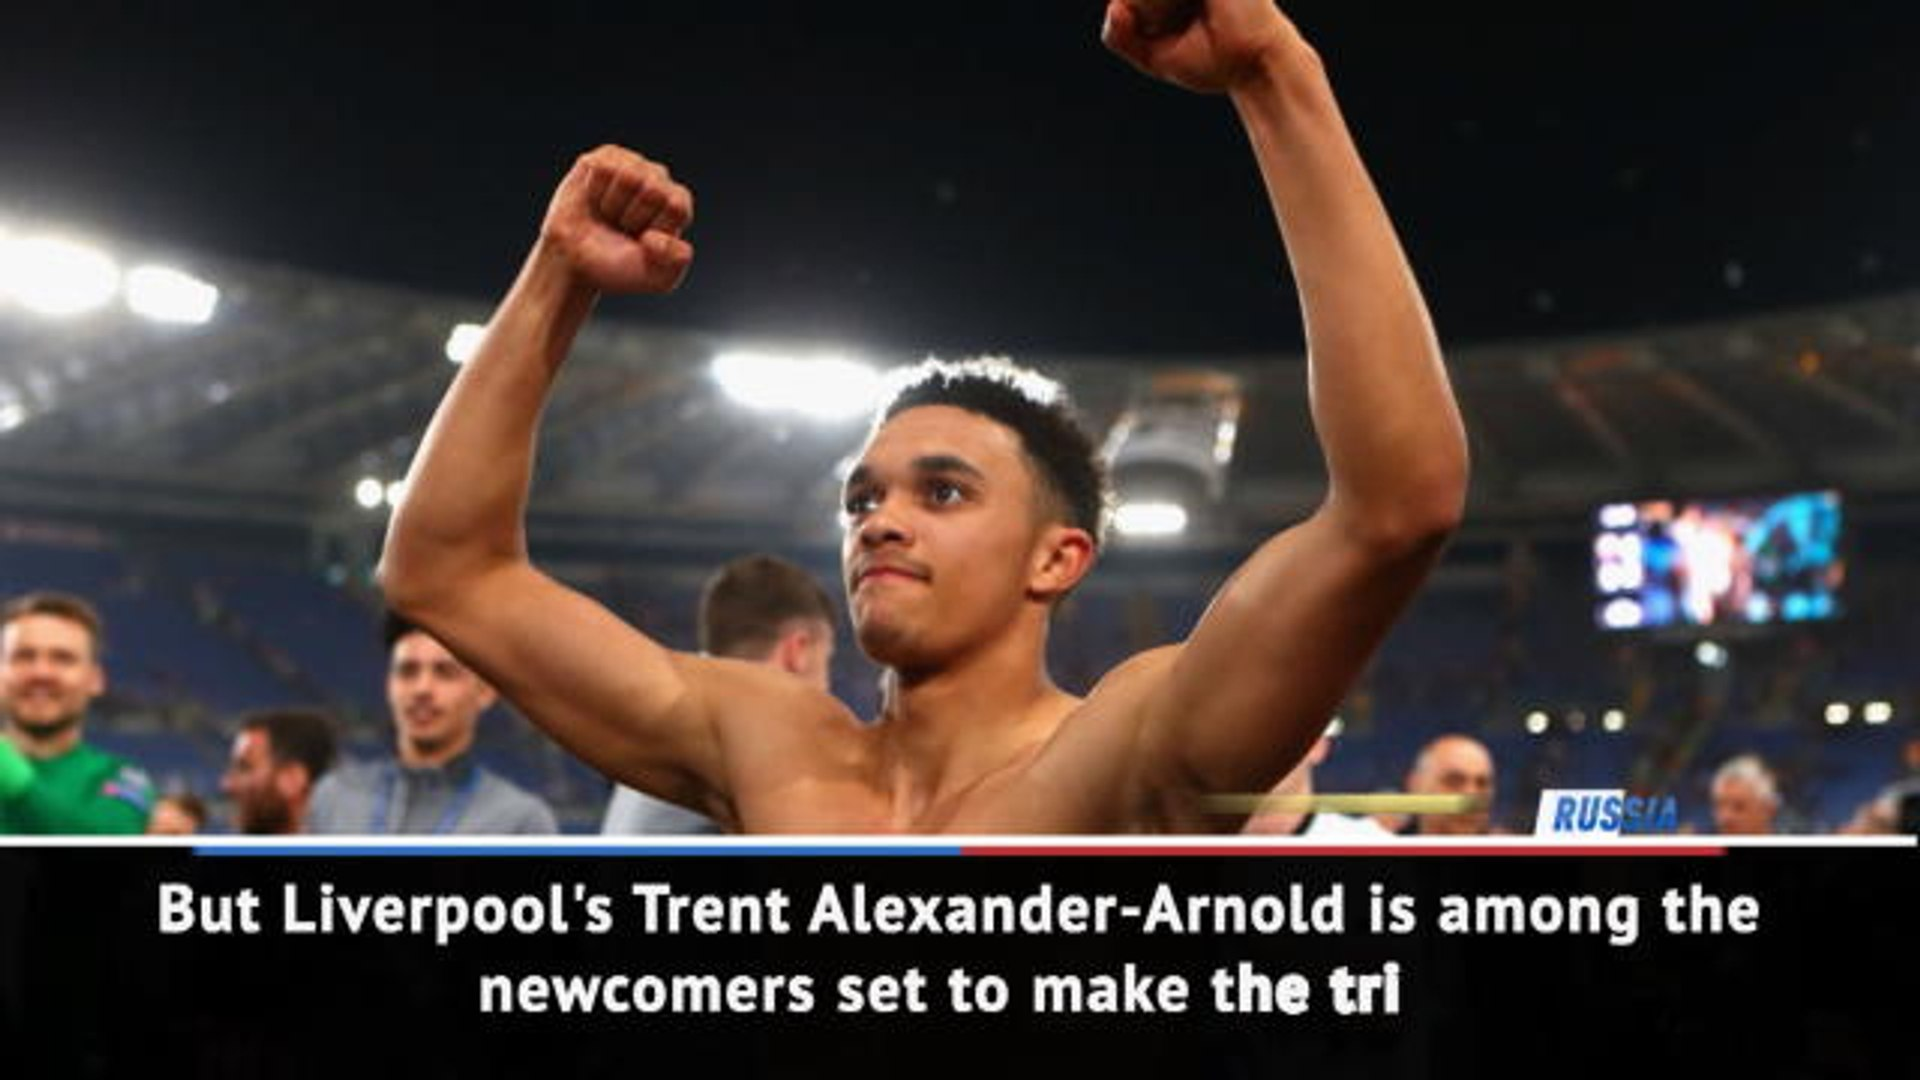 Breaking News Alert - Southgate names Alexander-Arnold in World Cup squad